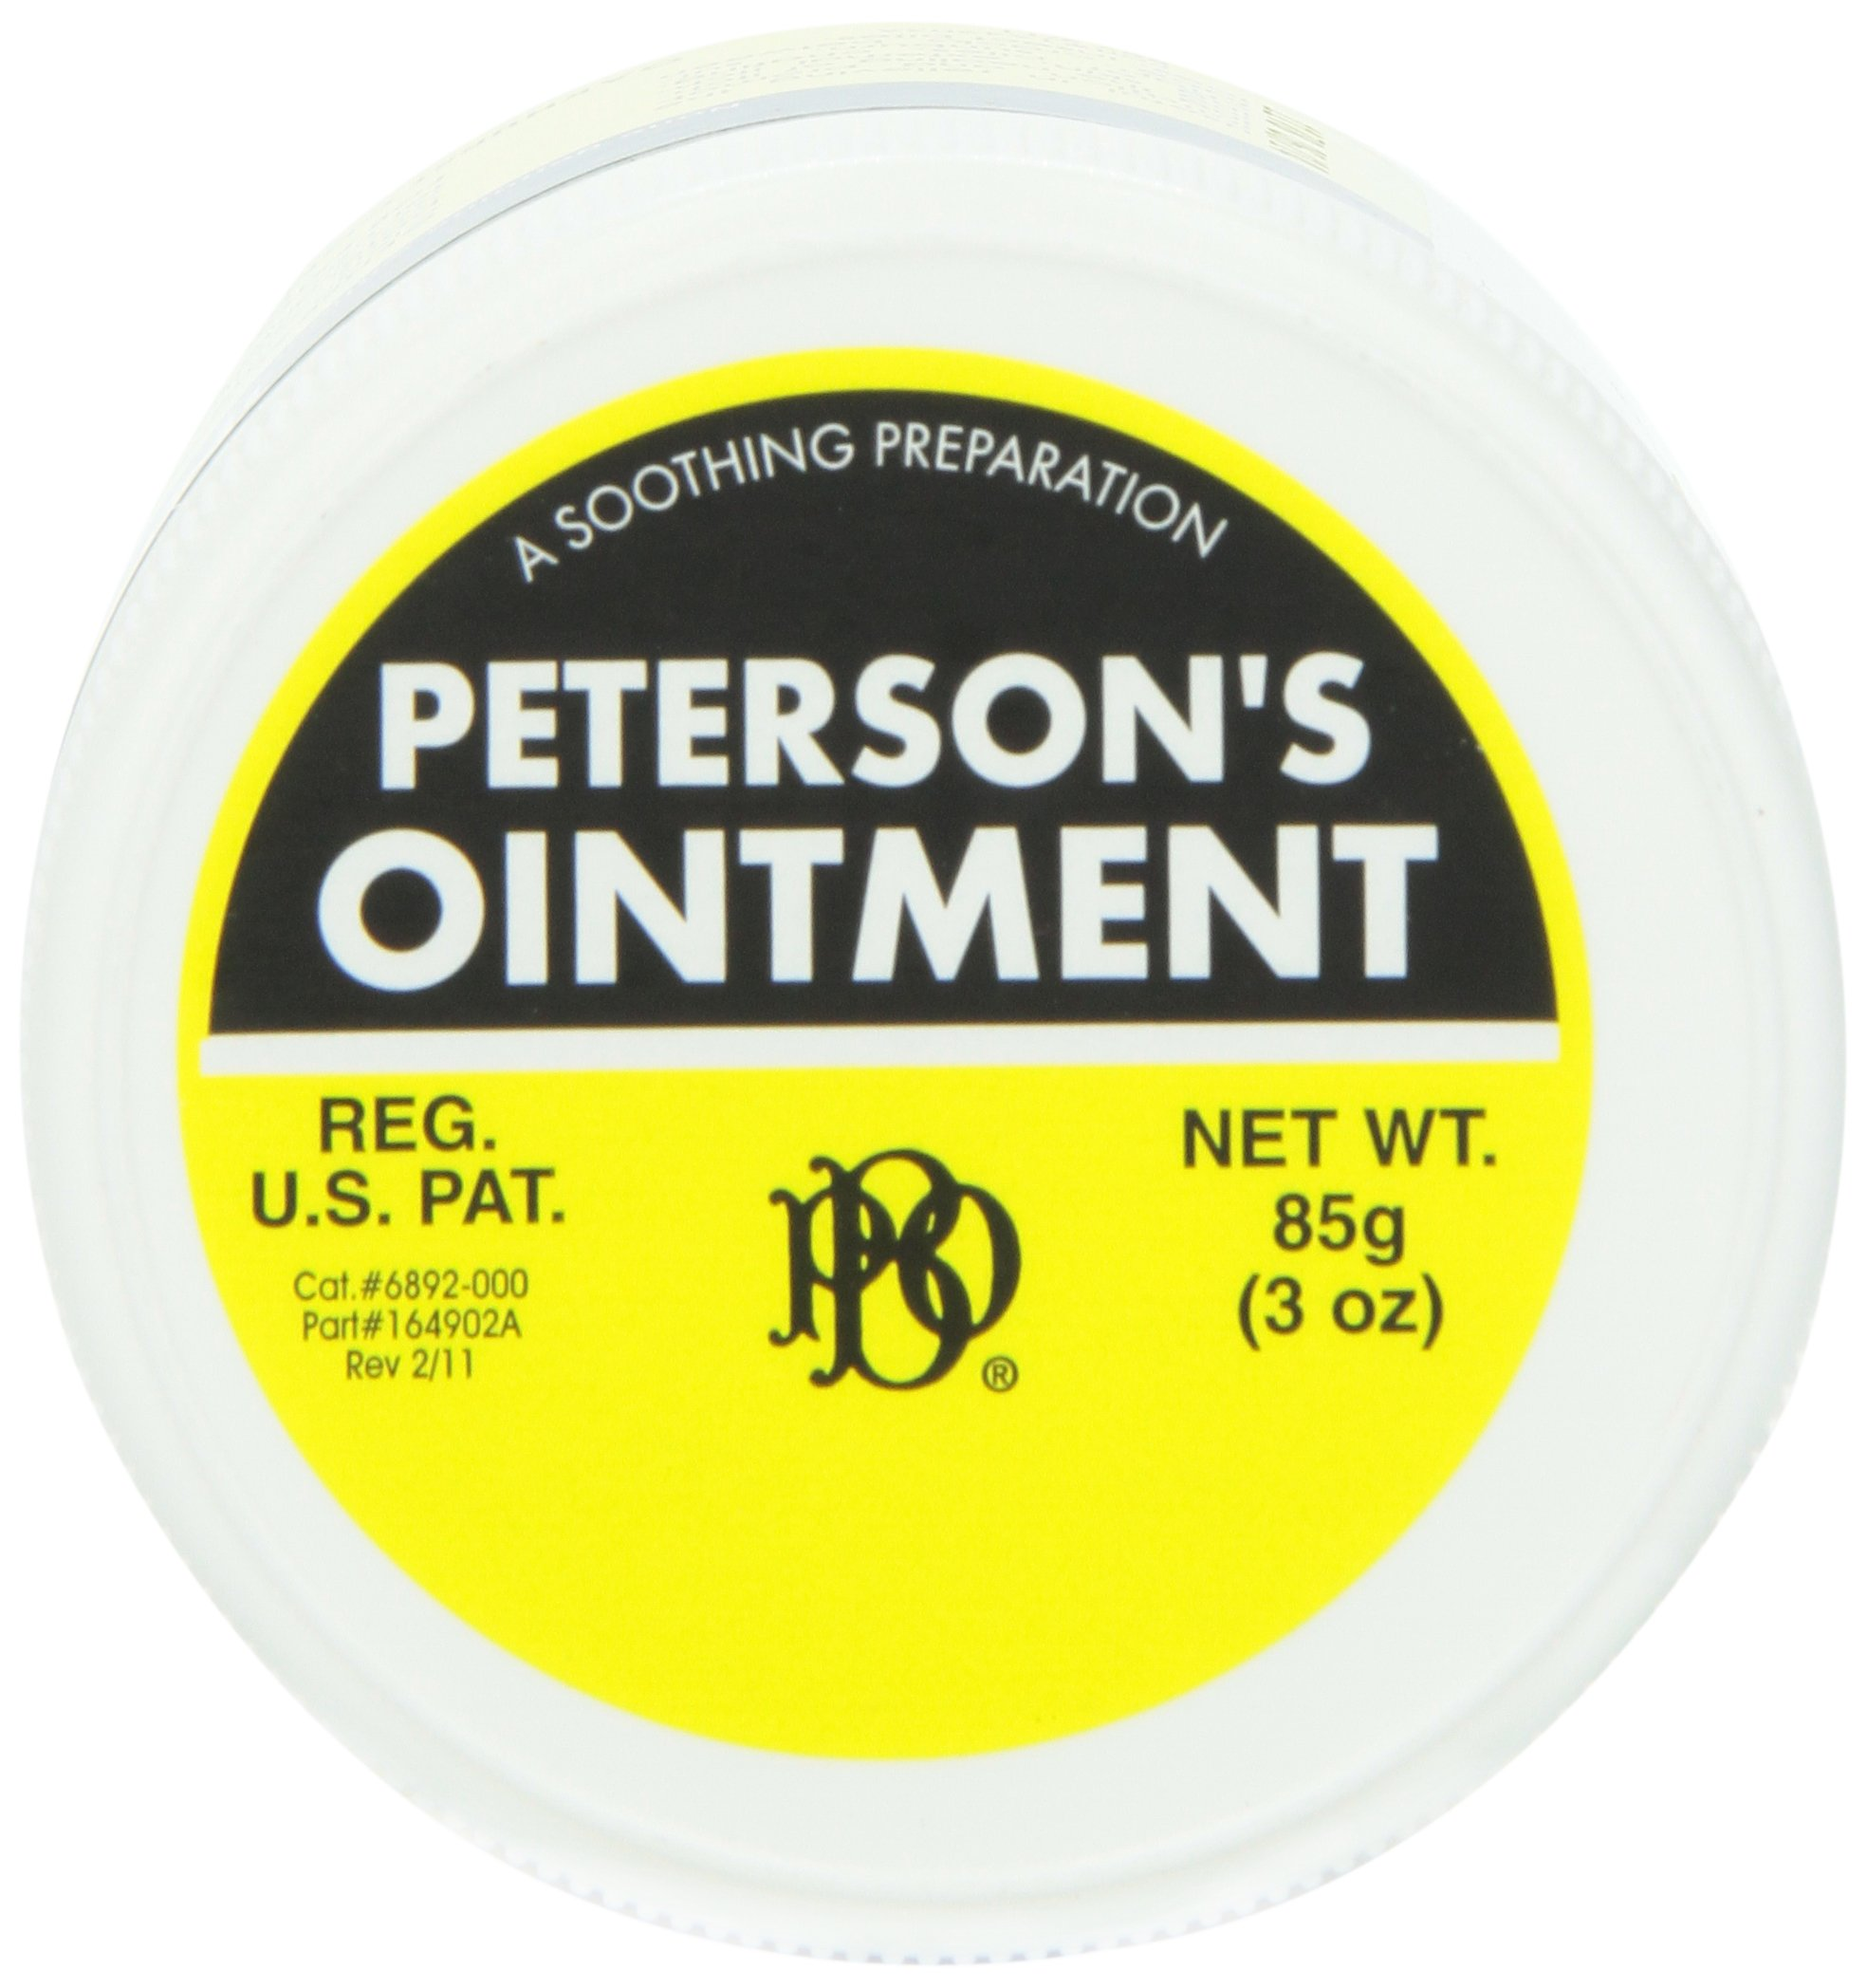 Peterson's Hemorrhoidal Ointment, 3 oz